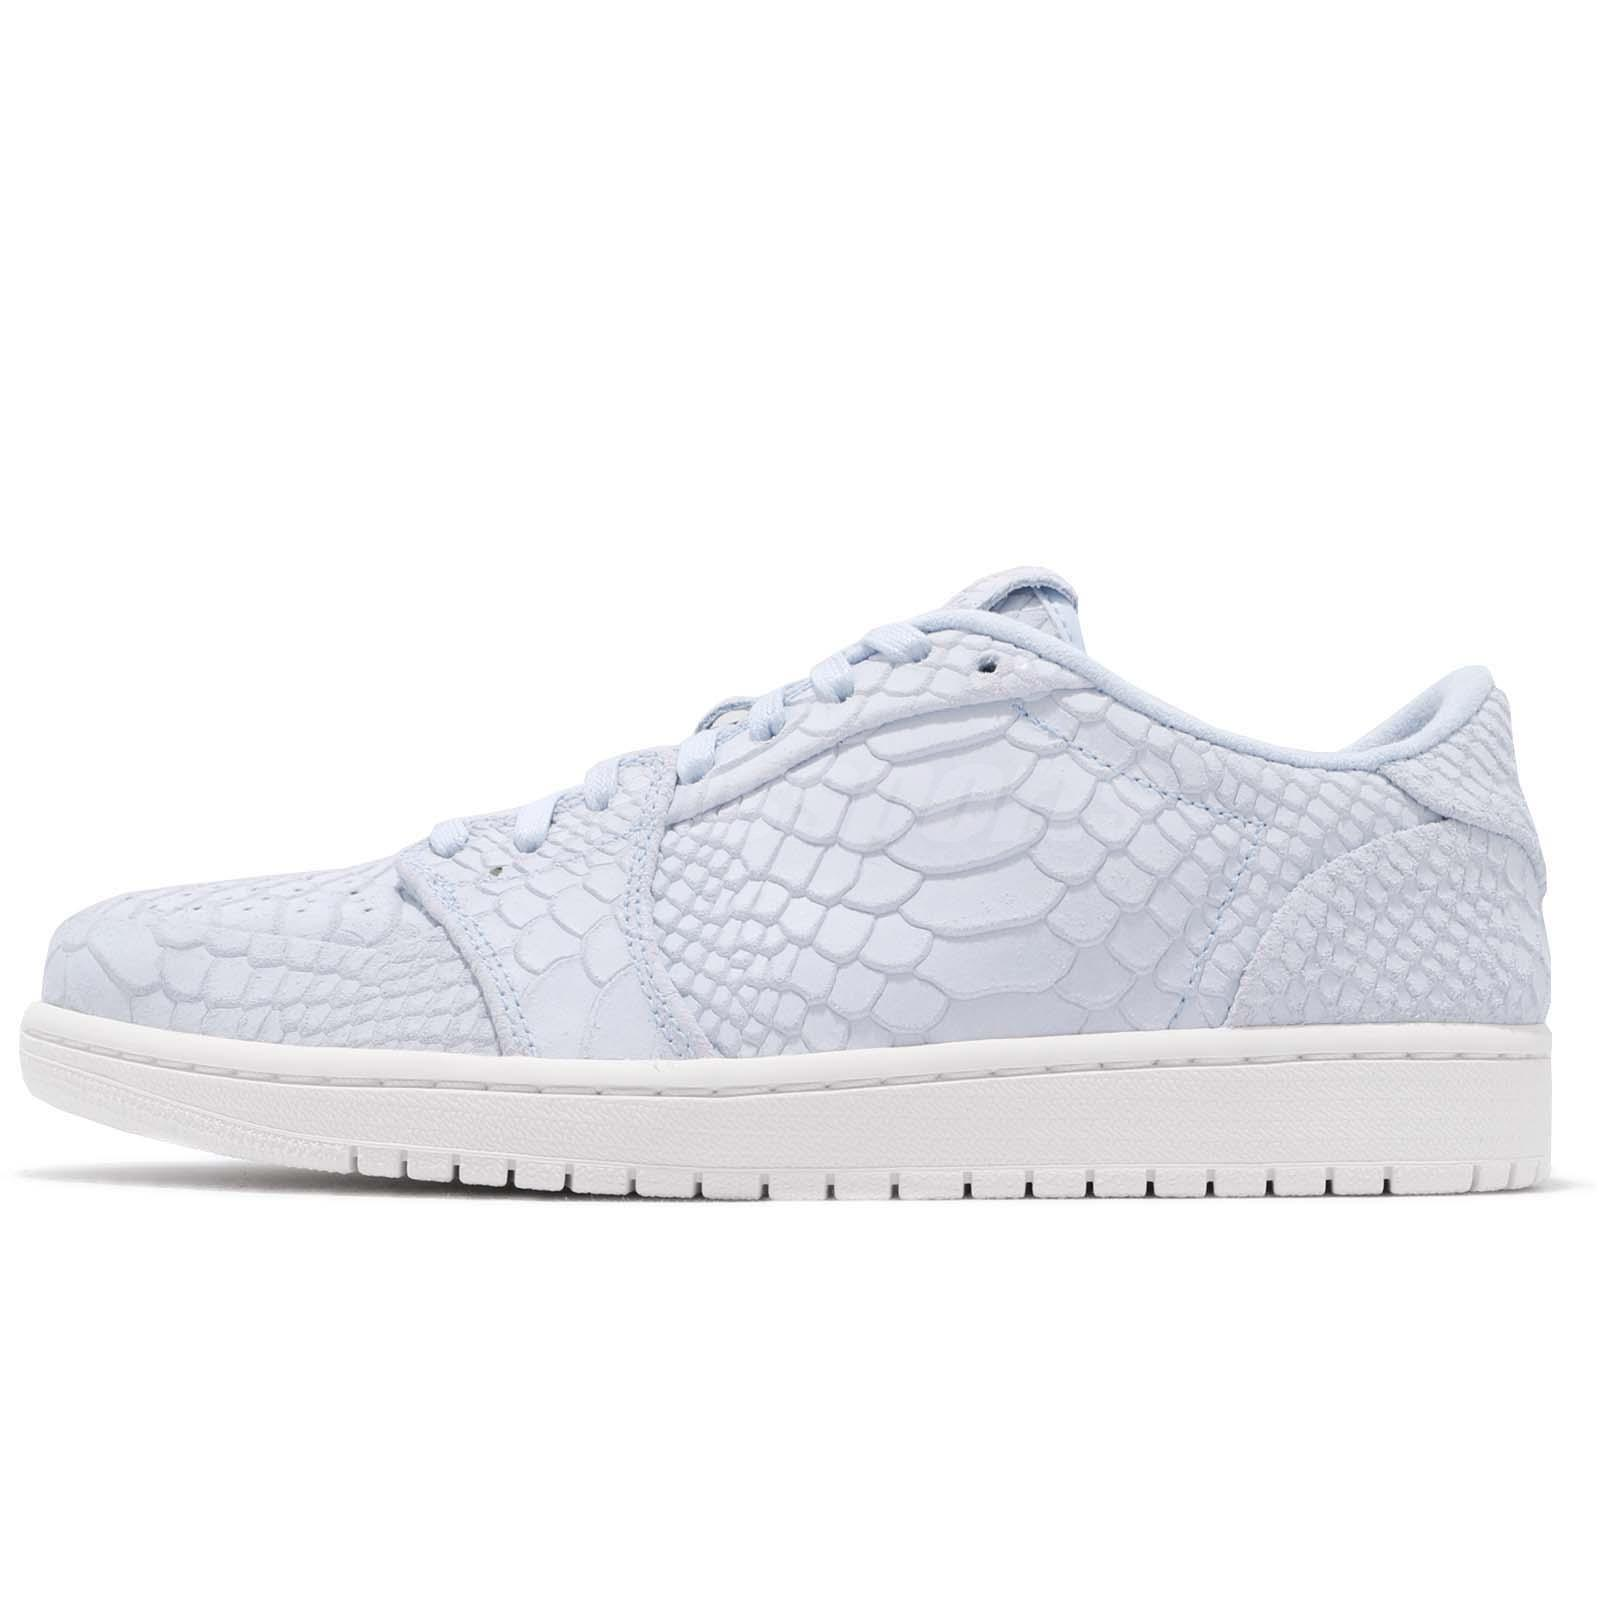 9cb19caf8f31 Nike Air Jordan 1 Retro Low NS No Swoosh Ice Blue Sail Men Shoes 872782-441